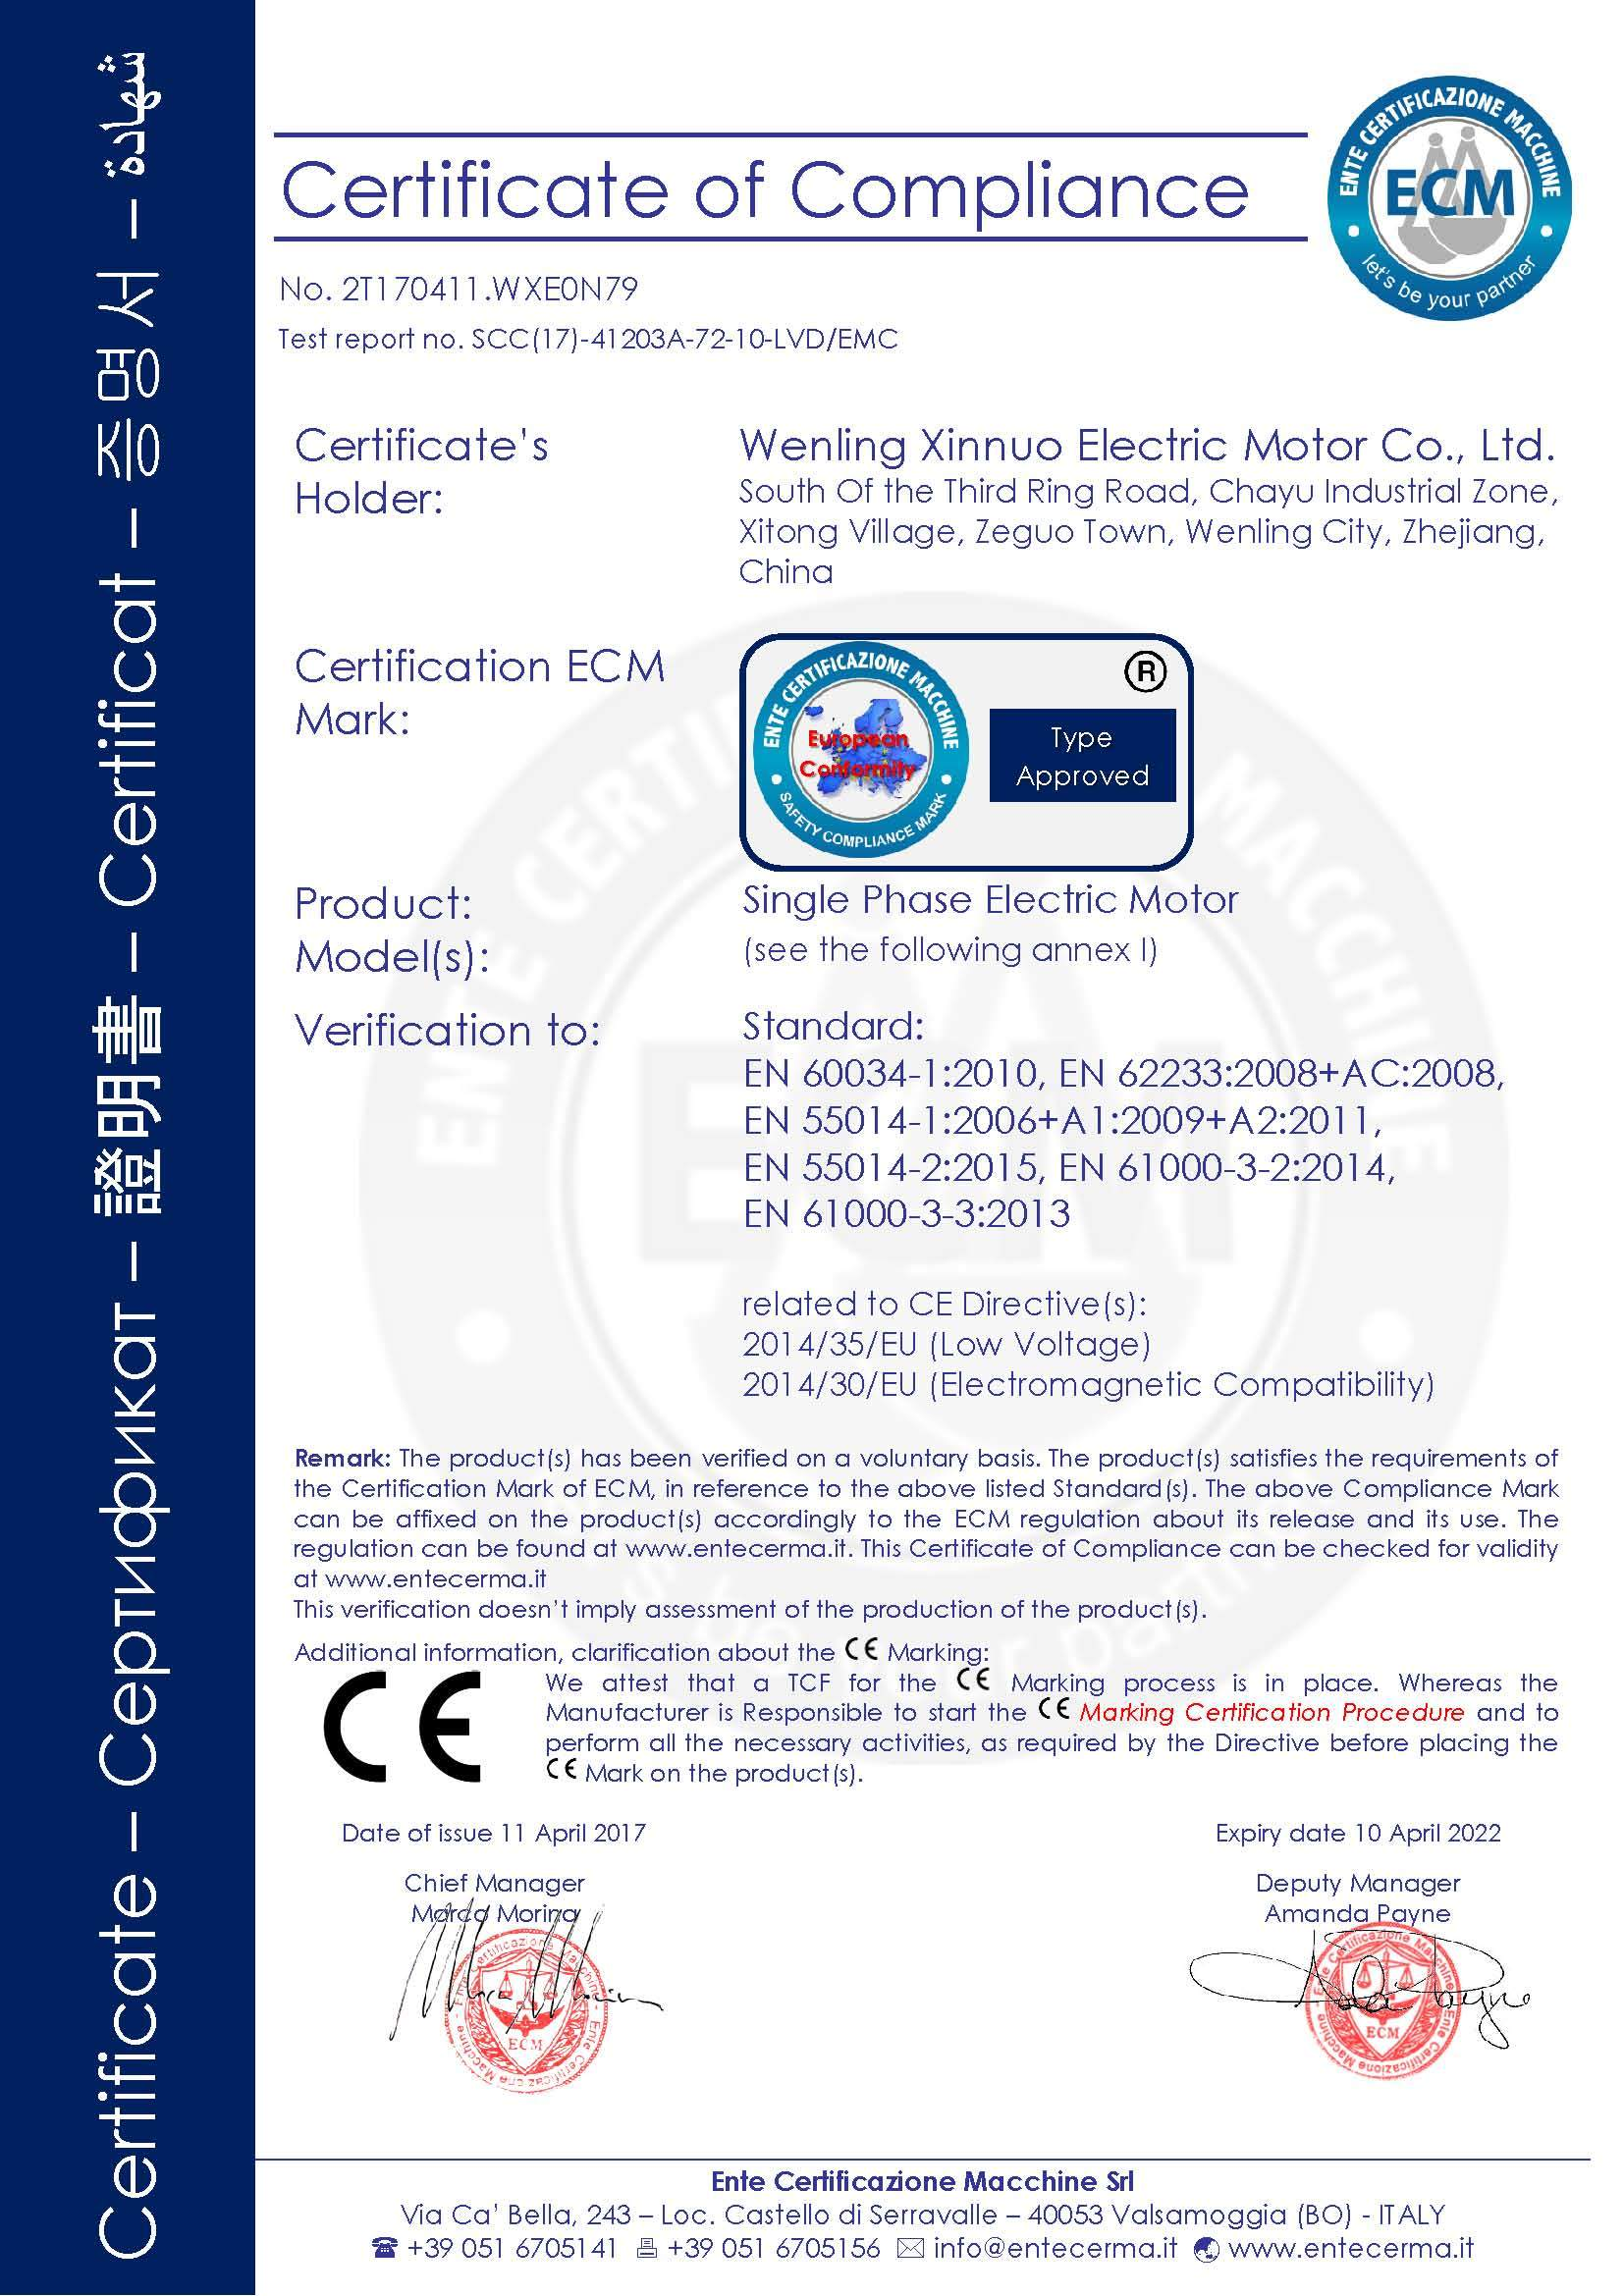 Single Phase Electric Motor Lvd & EMC CE Certificate